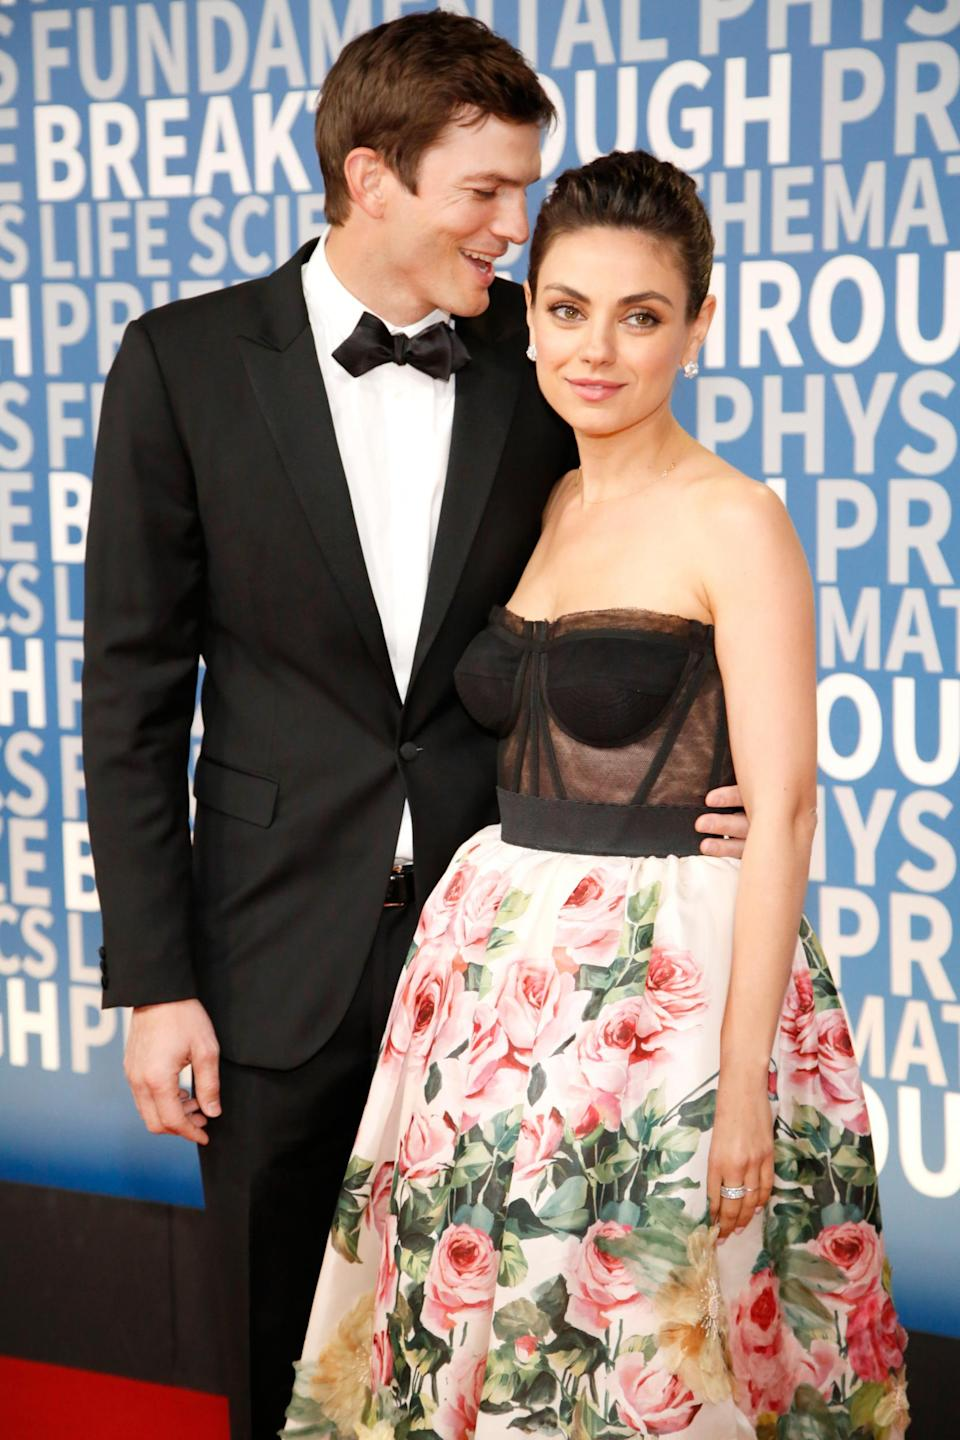 Married: Mila Kunis and Asnton Kutcher tied the knot in 2015 (Getty Images)